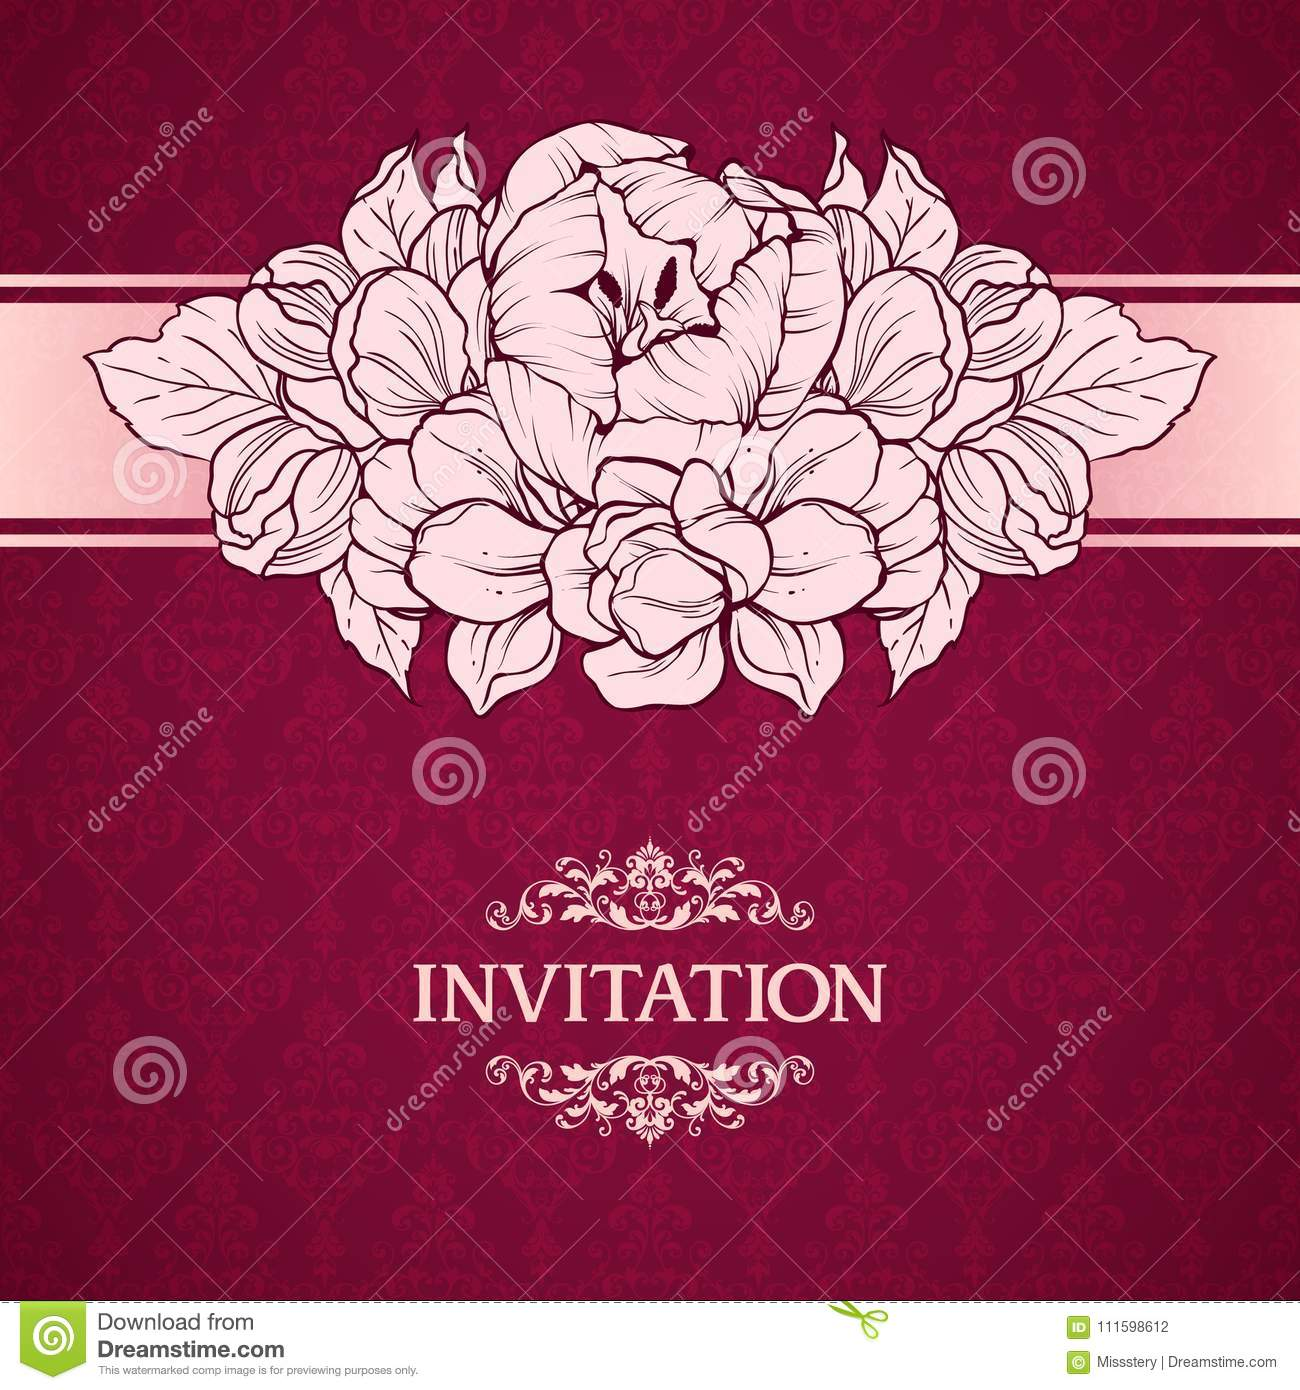 Wedding Marriage Invitation With Linear Flowers On Ornate Background ...